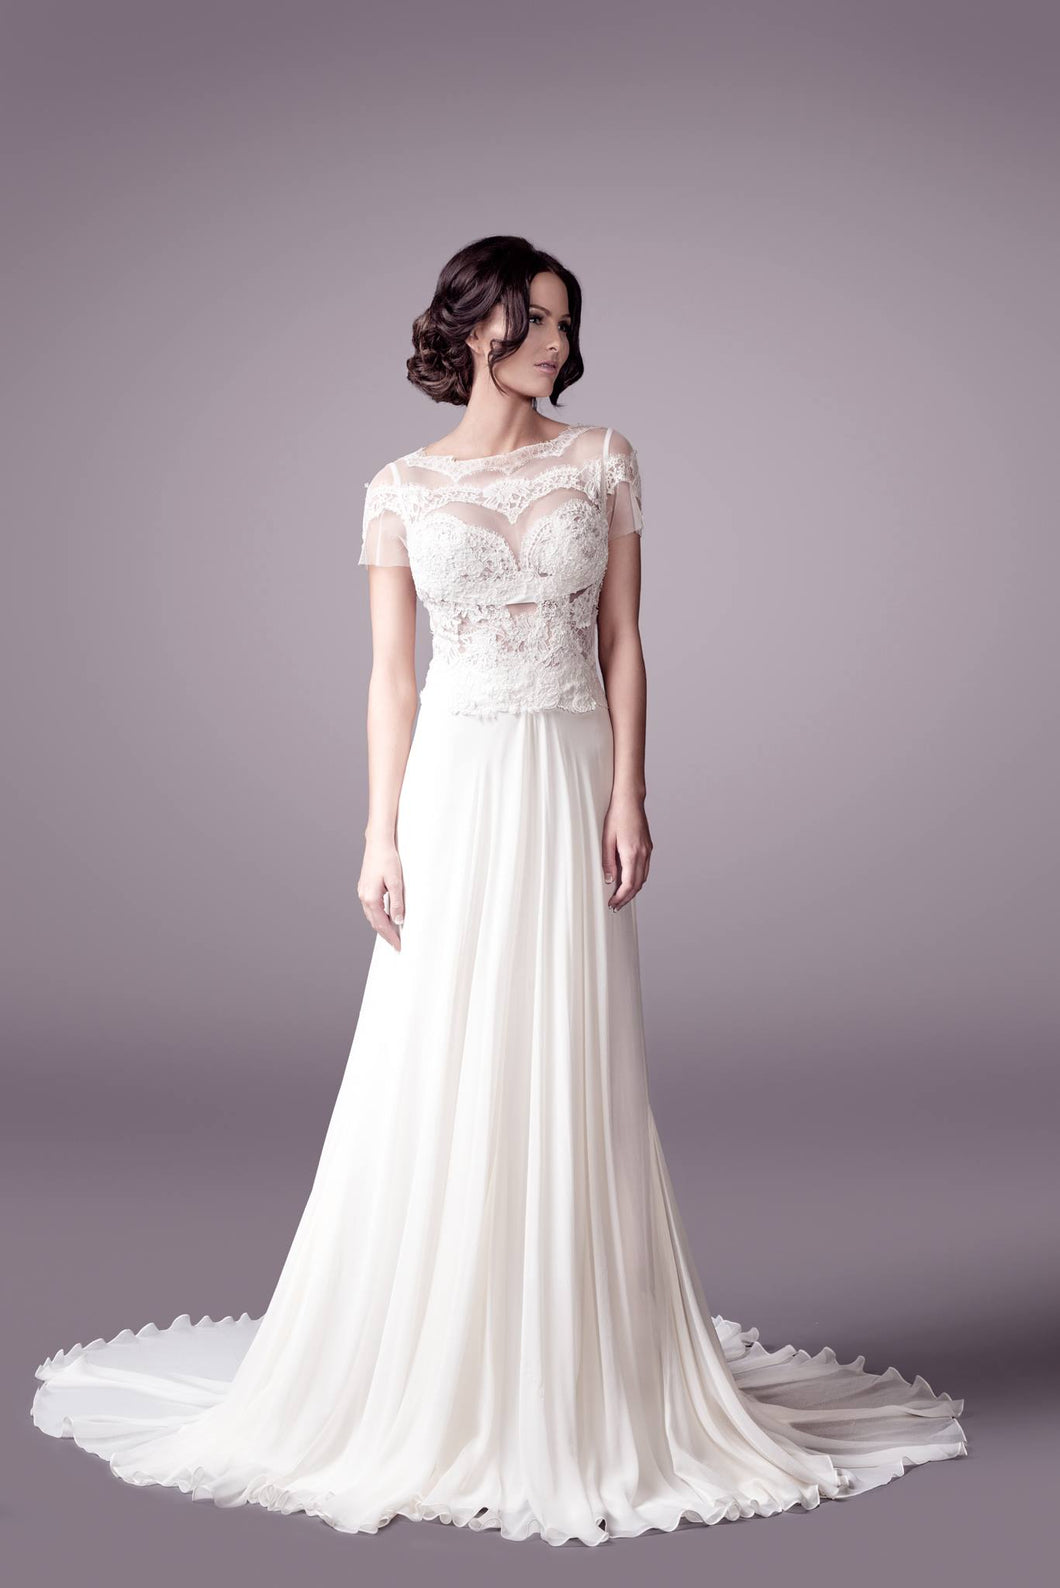 Elia wedding dress bridal gown Perth - 9303F